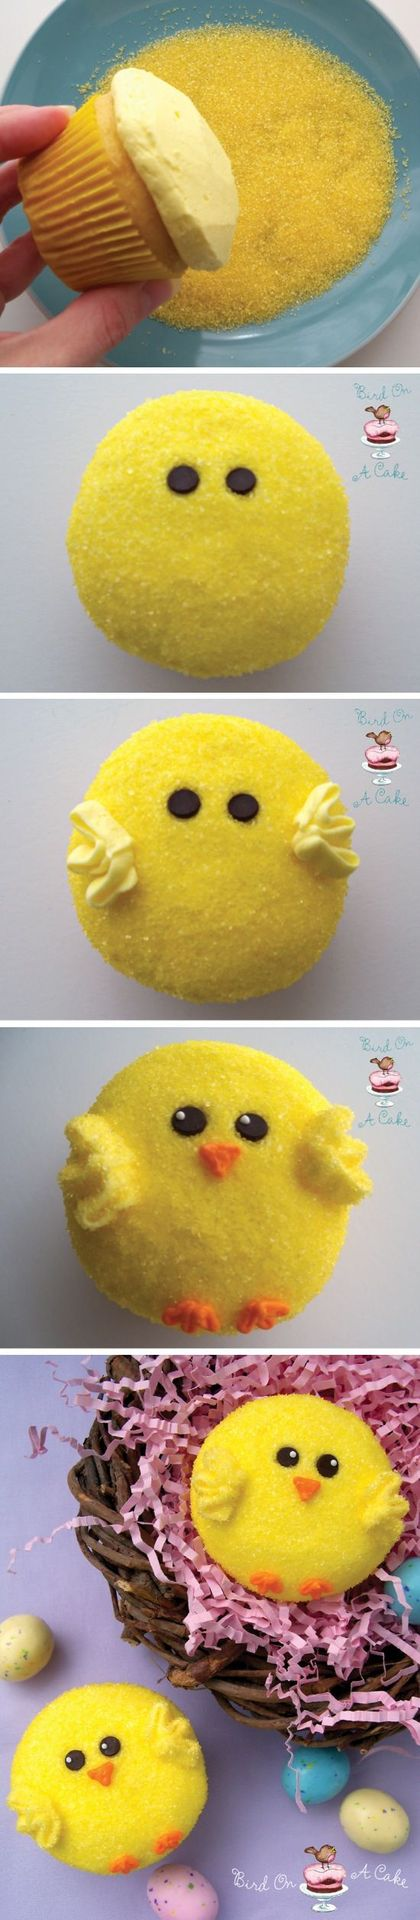 Easter Chick Cupcakes-Supplies list and instructions included.